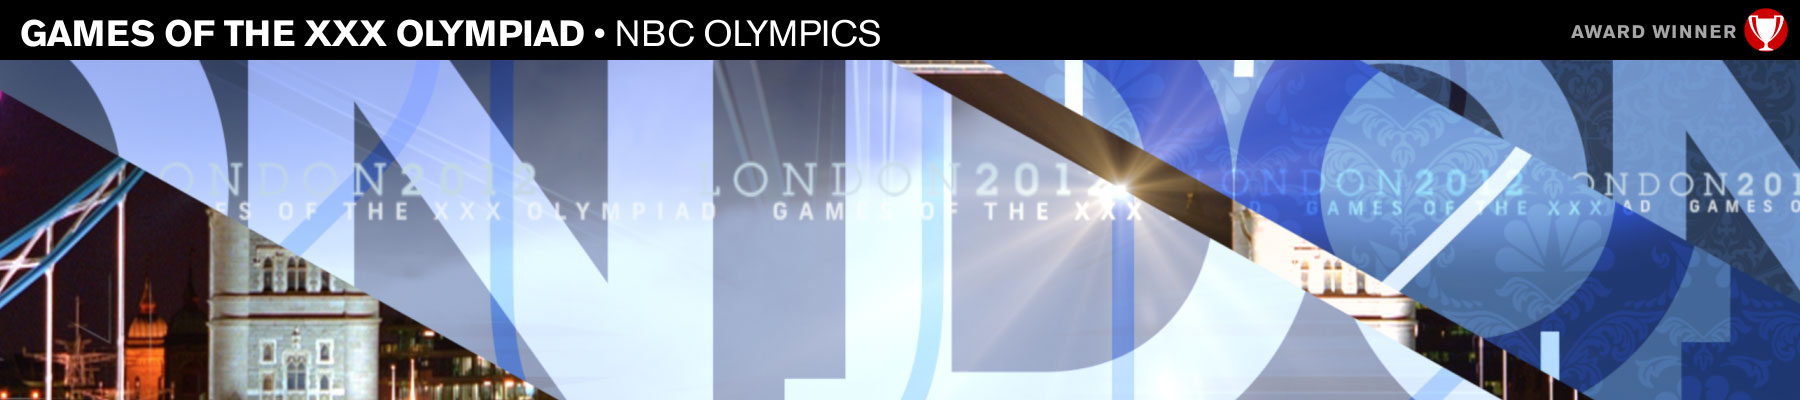 Games of the XXX Olympiad • NBC Olympics